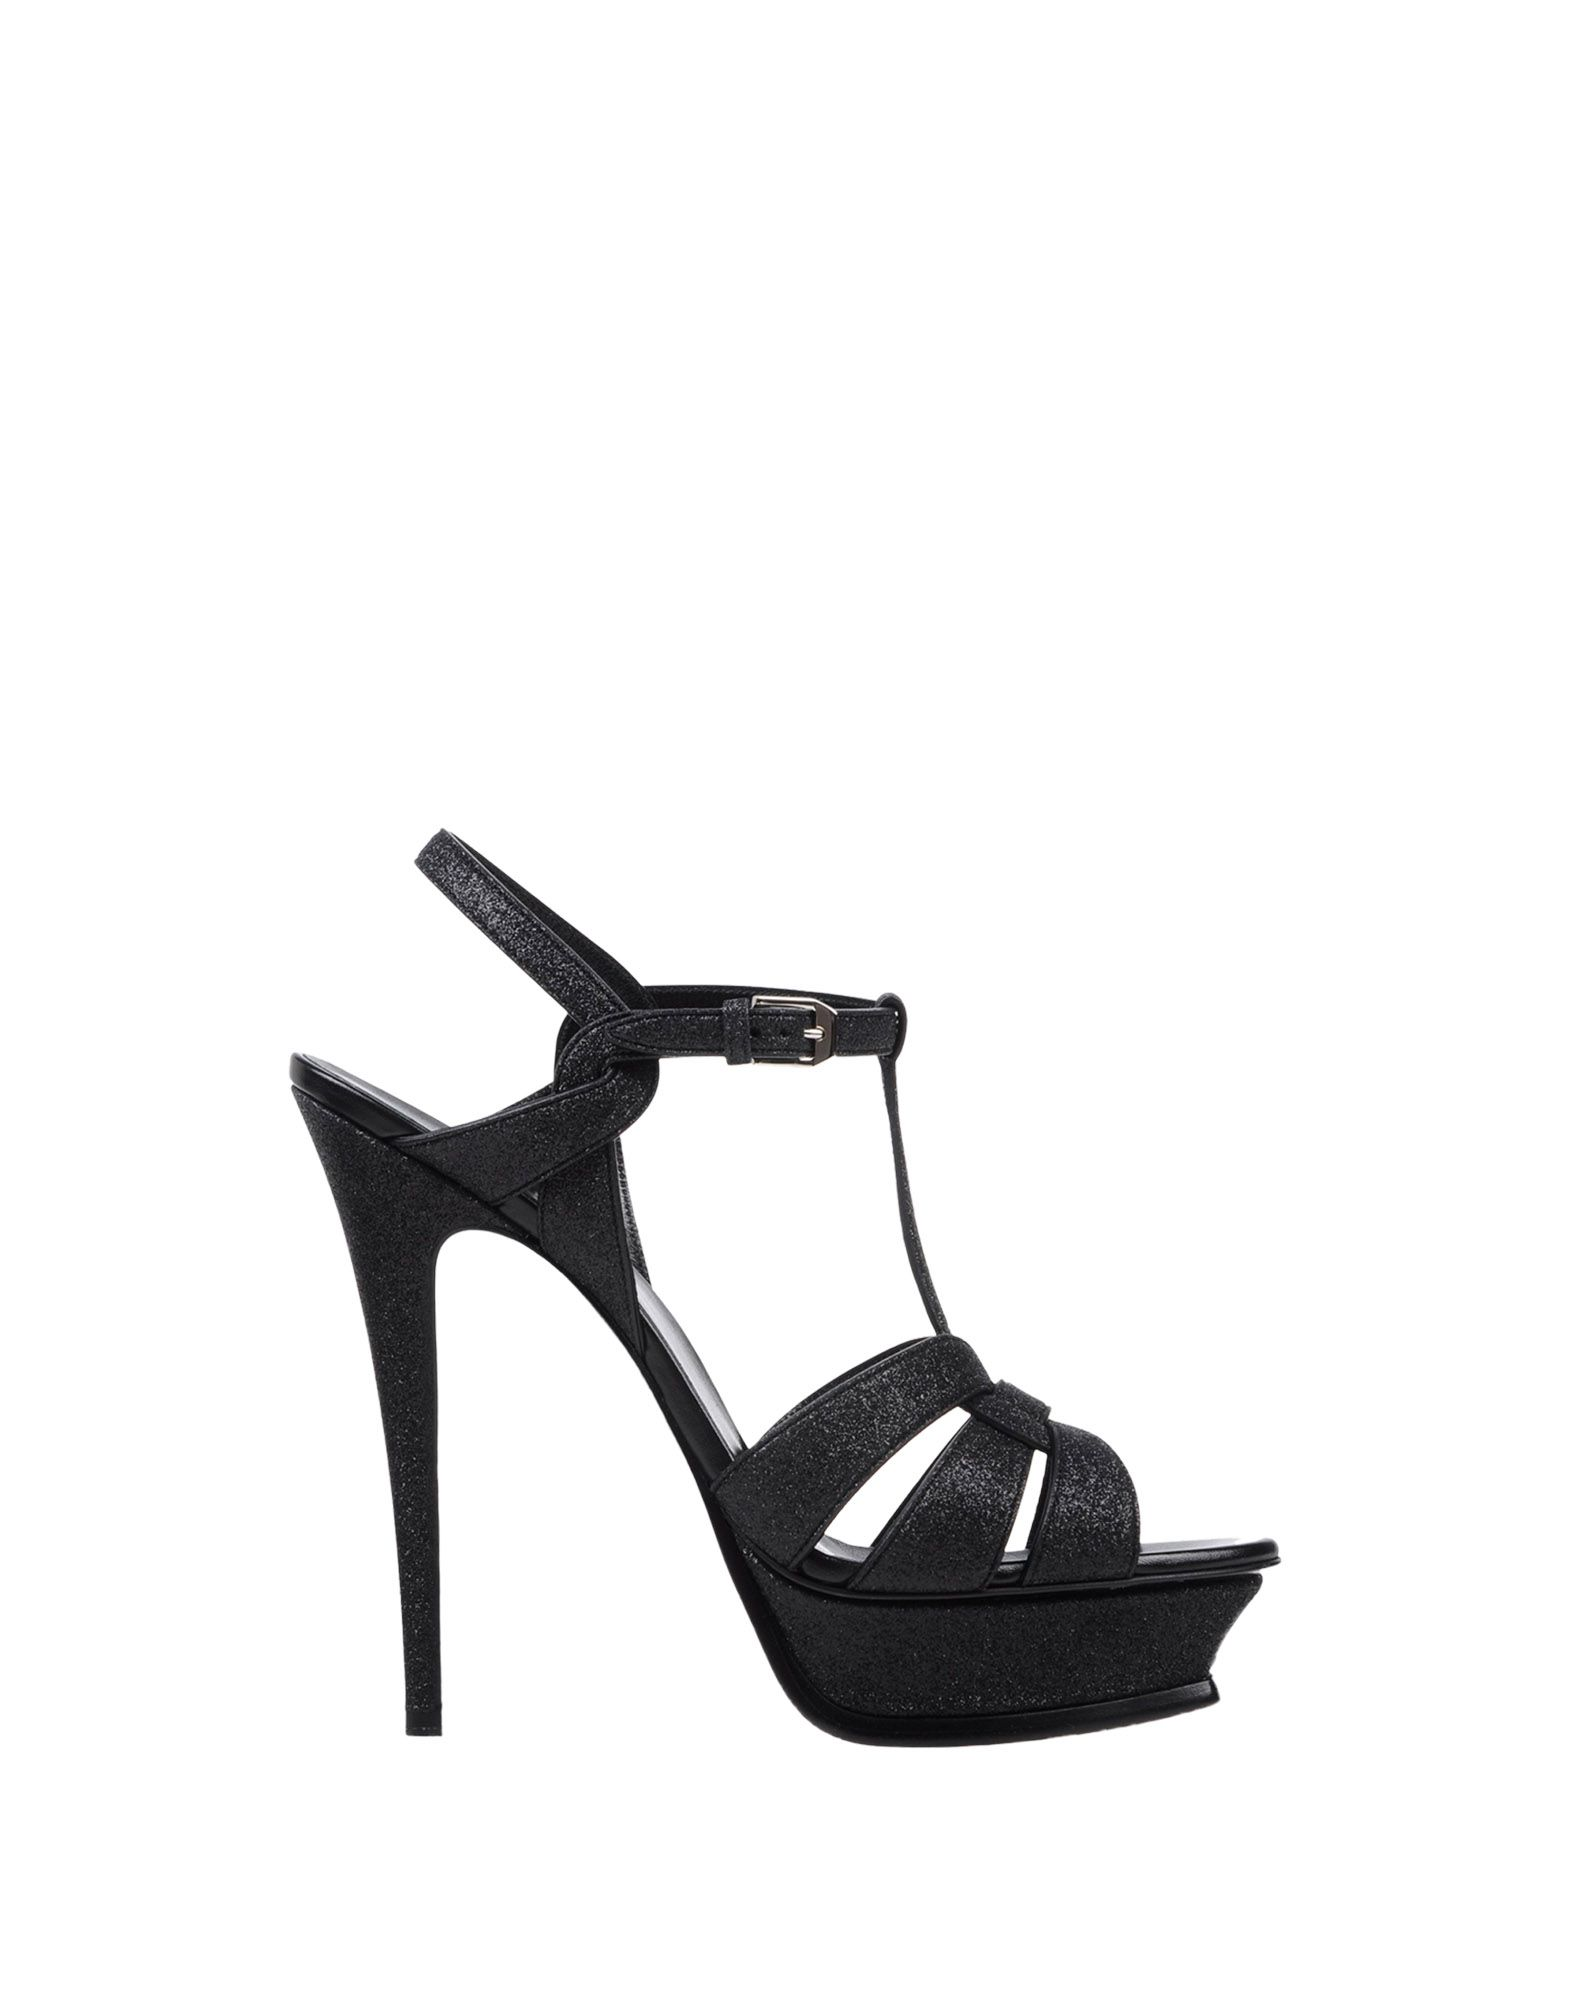 Sandales Saint Laurent Femme - Sandales Saint Laurent sur